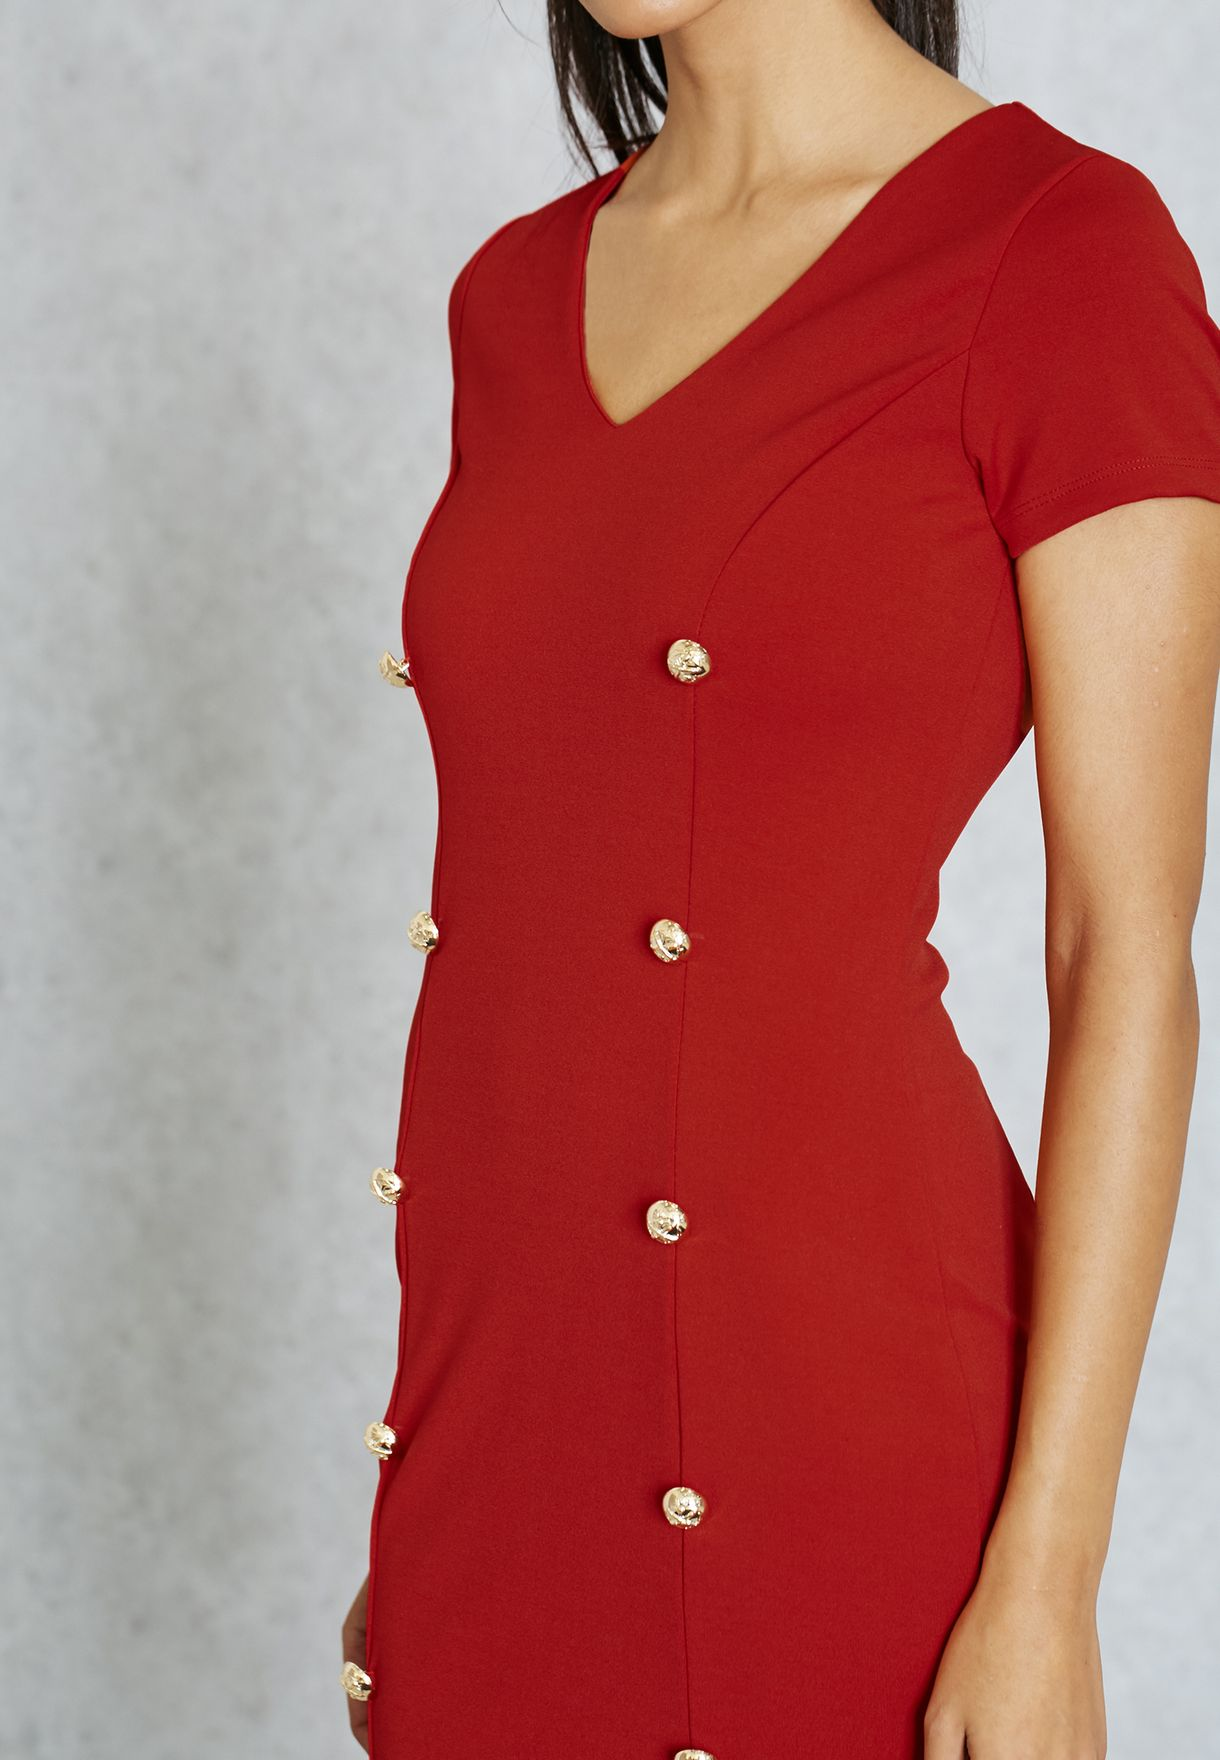 014c23851b292 Shop Ella red Double Breasted Dress for Women in Qatar ...